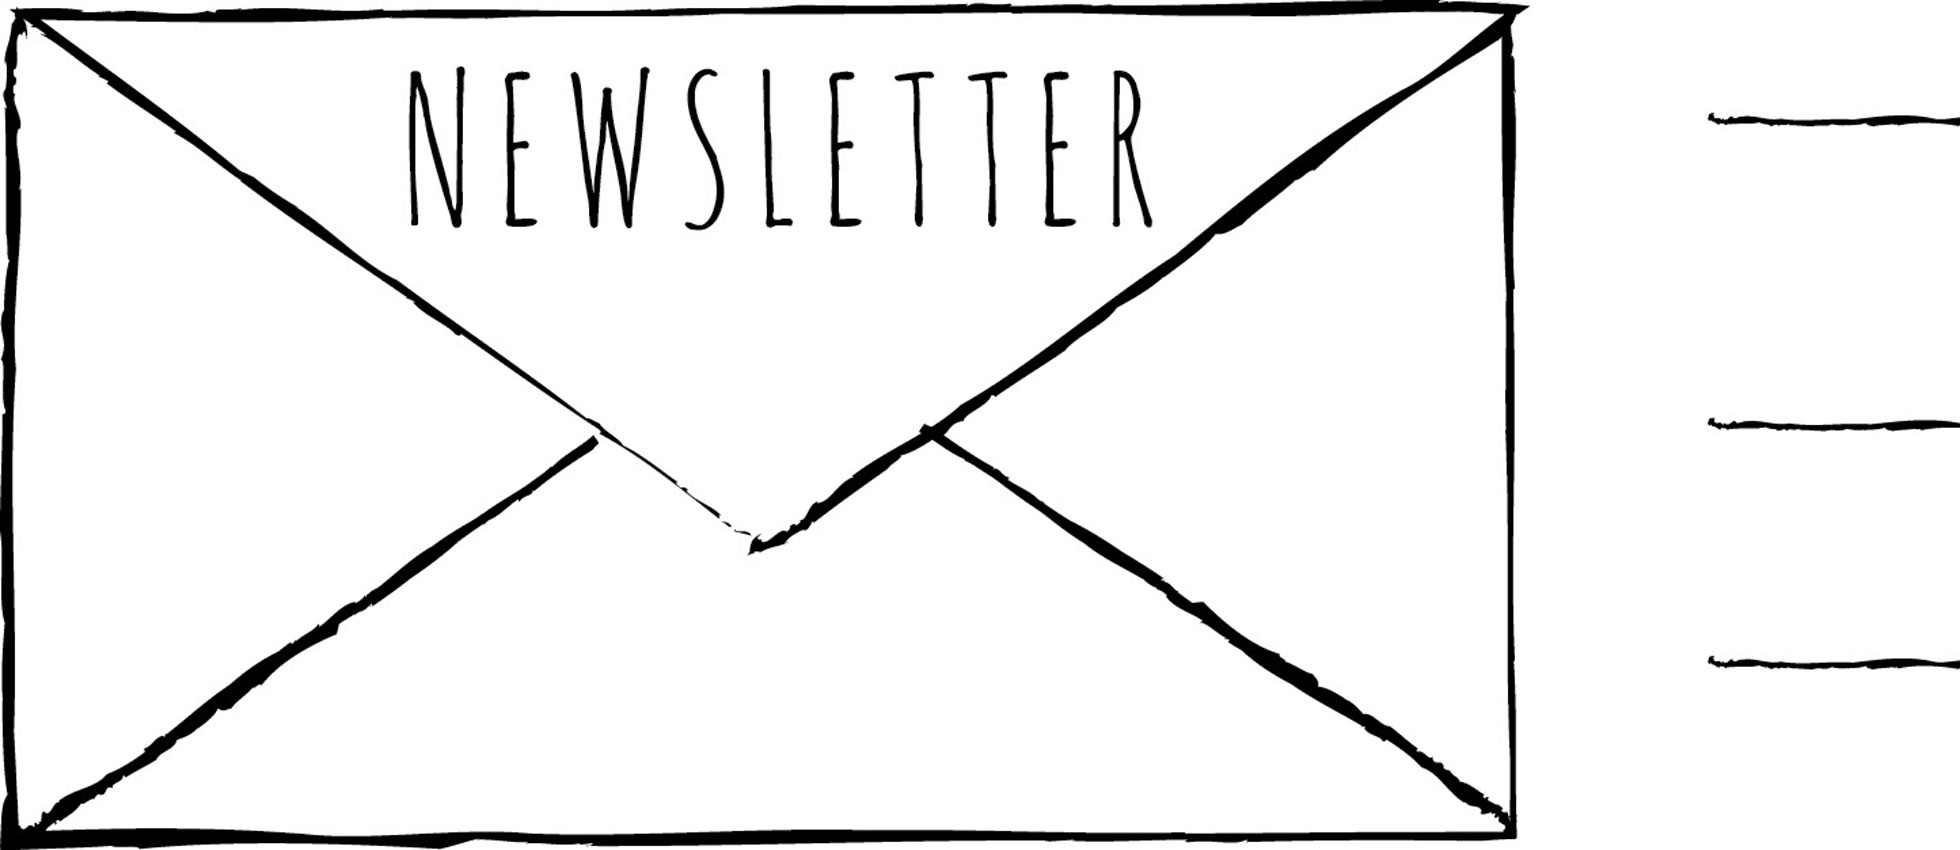 grupewebarchitektur: Newsletter